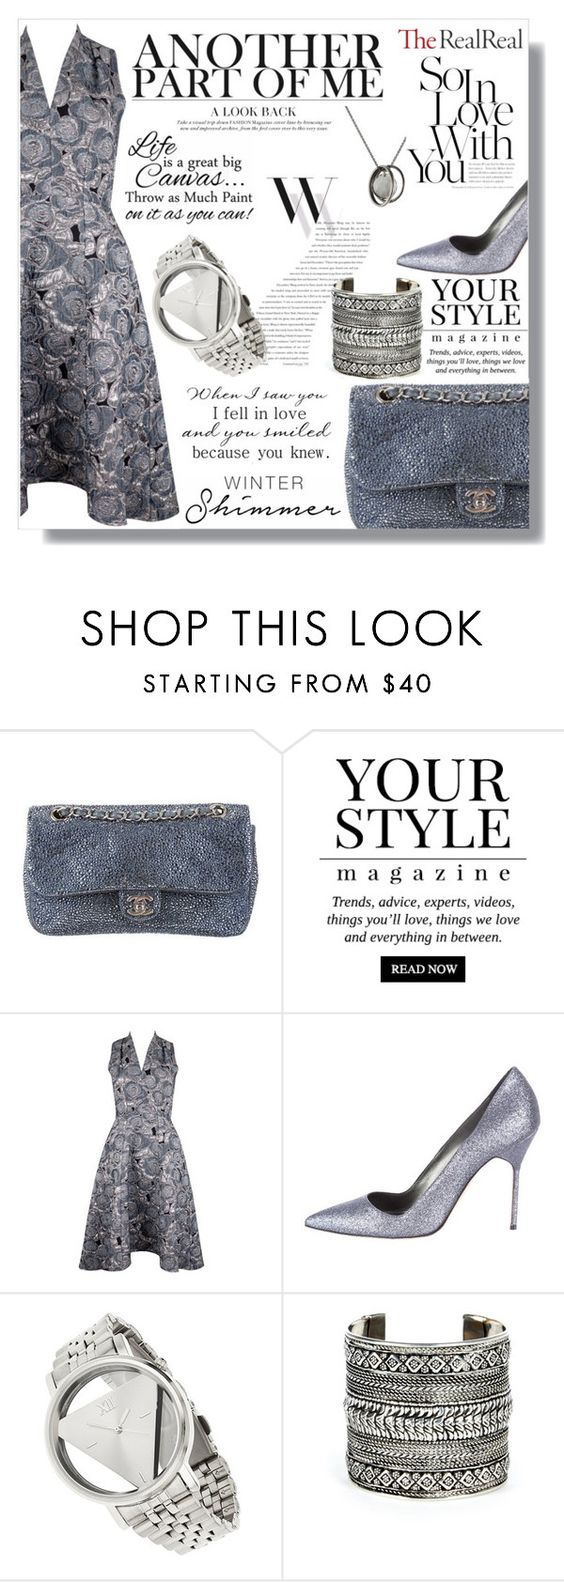 """""""Holiday Sparkle With The RealReal: Contest Entry"""" by pankh ❤ liked on Polyvore featuring Chanel, Pussycat, Closet, Manolo Blahnik, Balenciaga, Miss Selfridge, Sole Society and Werkstatt:München"""